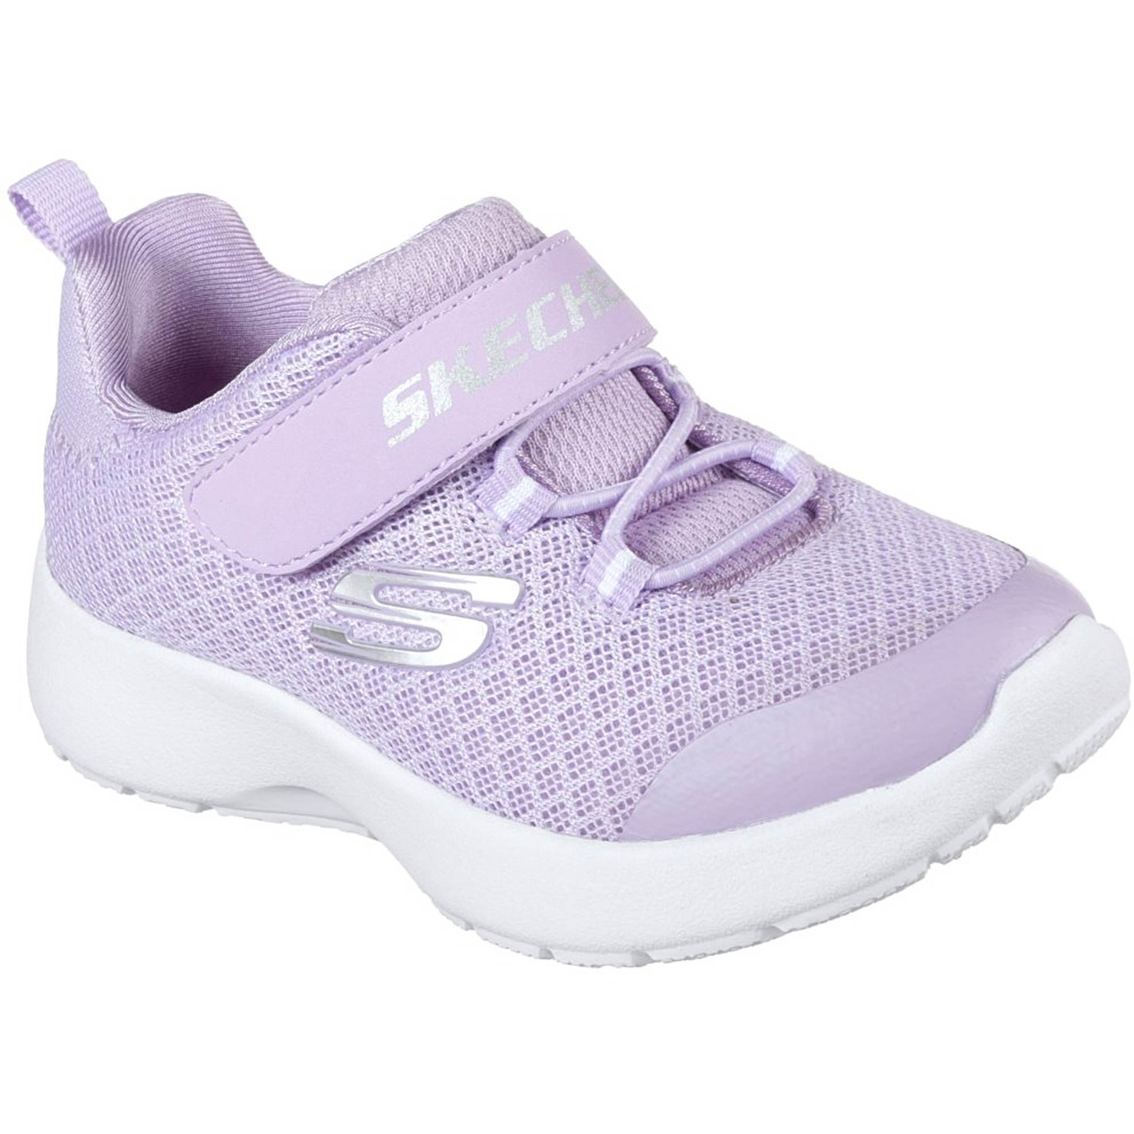 a19dbd0aed9 Skechers Girls Rally Racer Mesh Gore Strap Sneakers